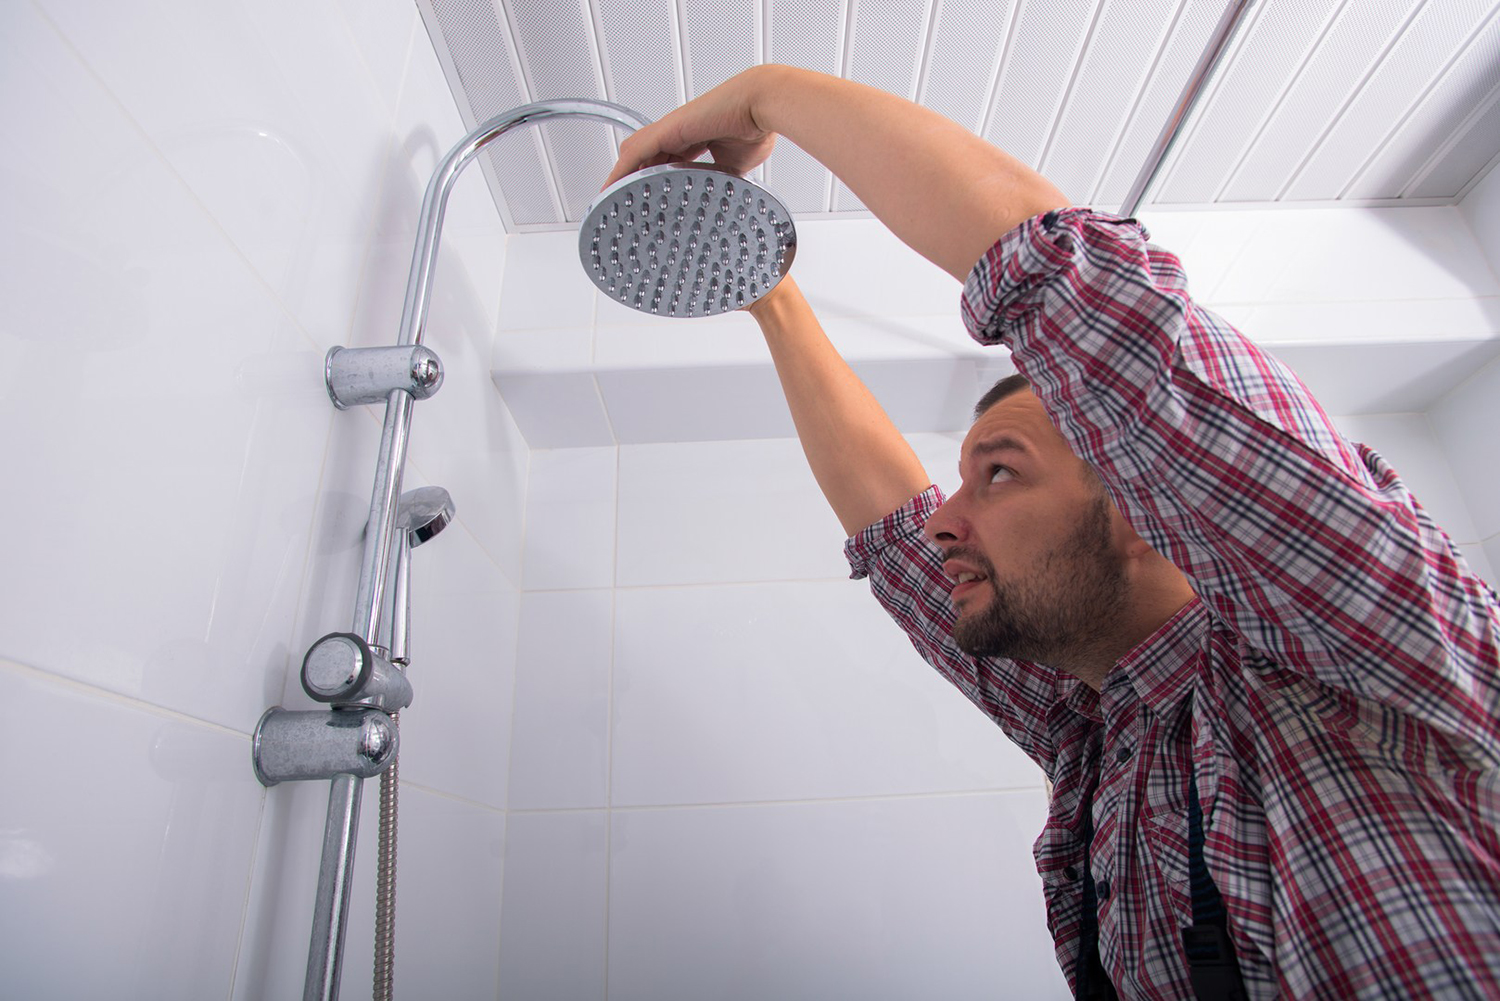 DIY Plumbing Tips And Tricks From The Pros | Home Interiors | Elle Blonde Luxury Lifestyle Destination Blog